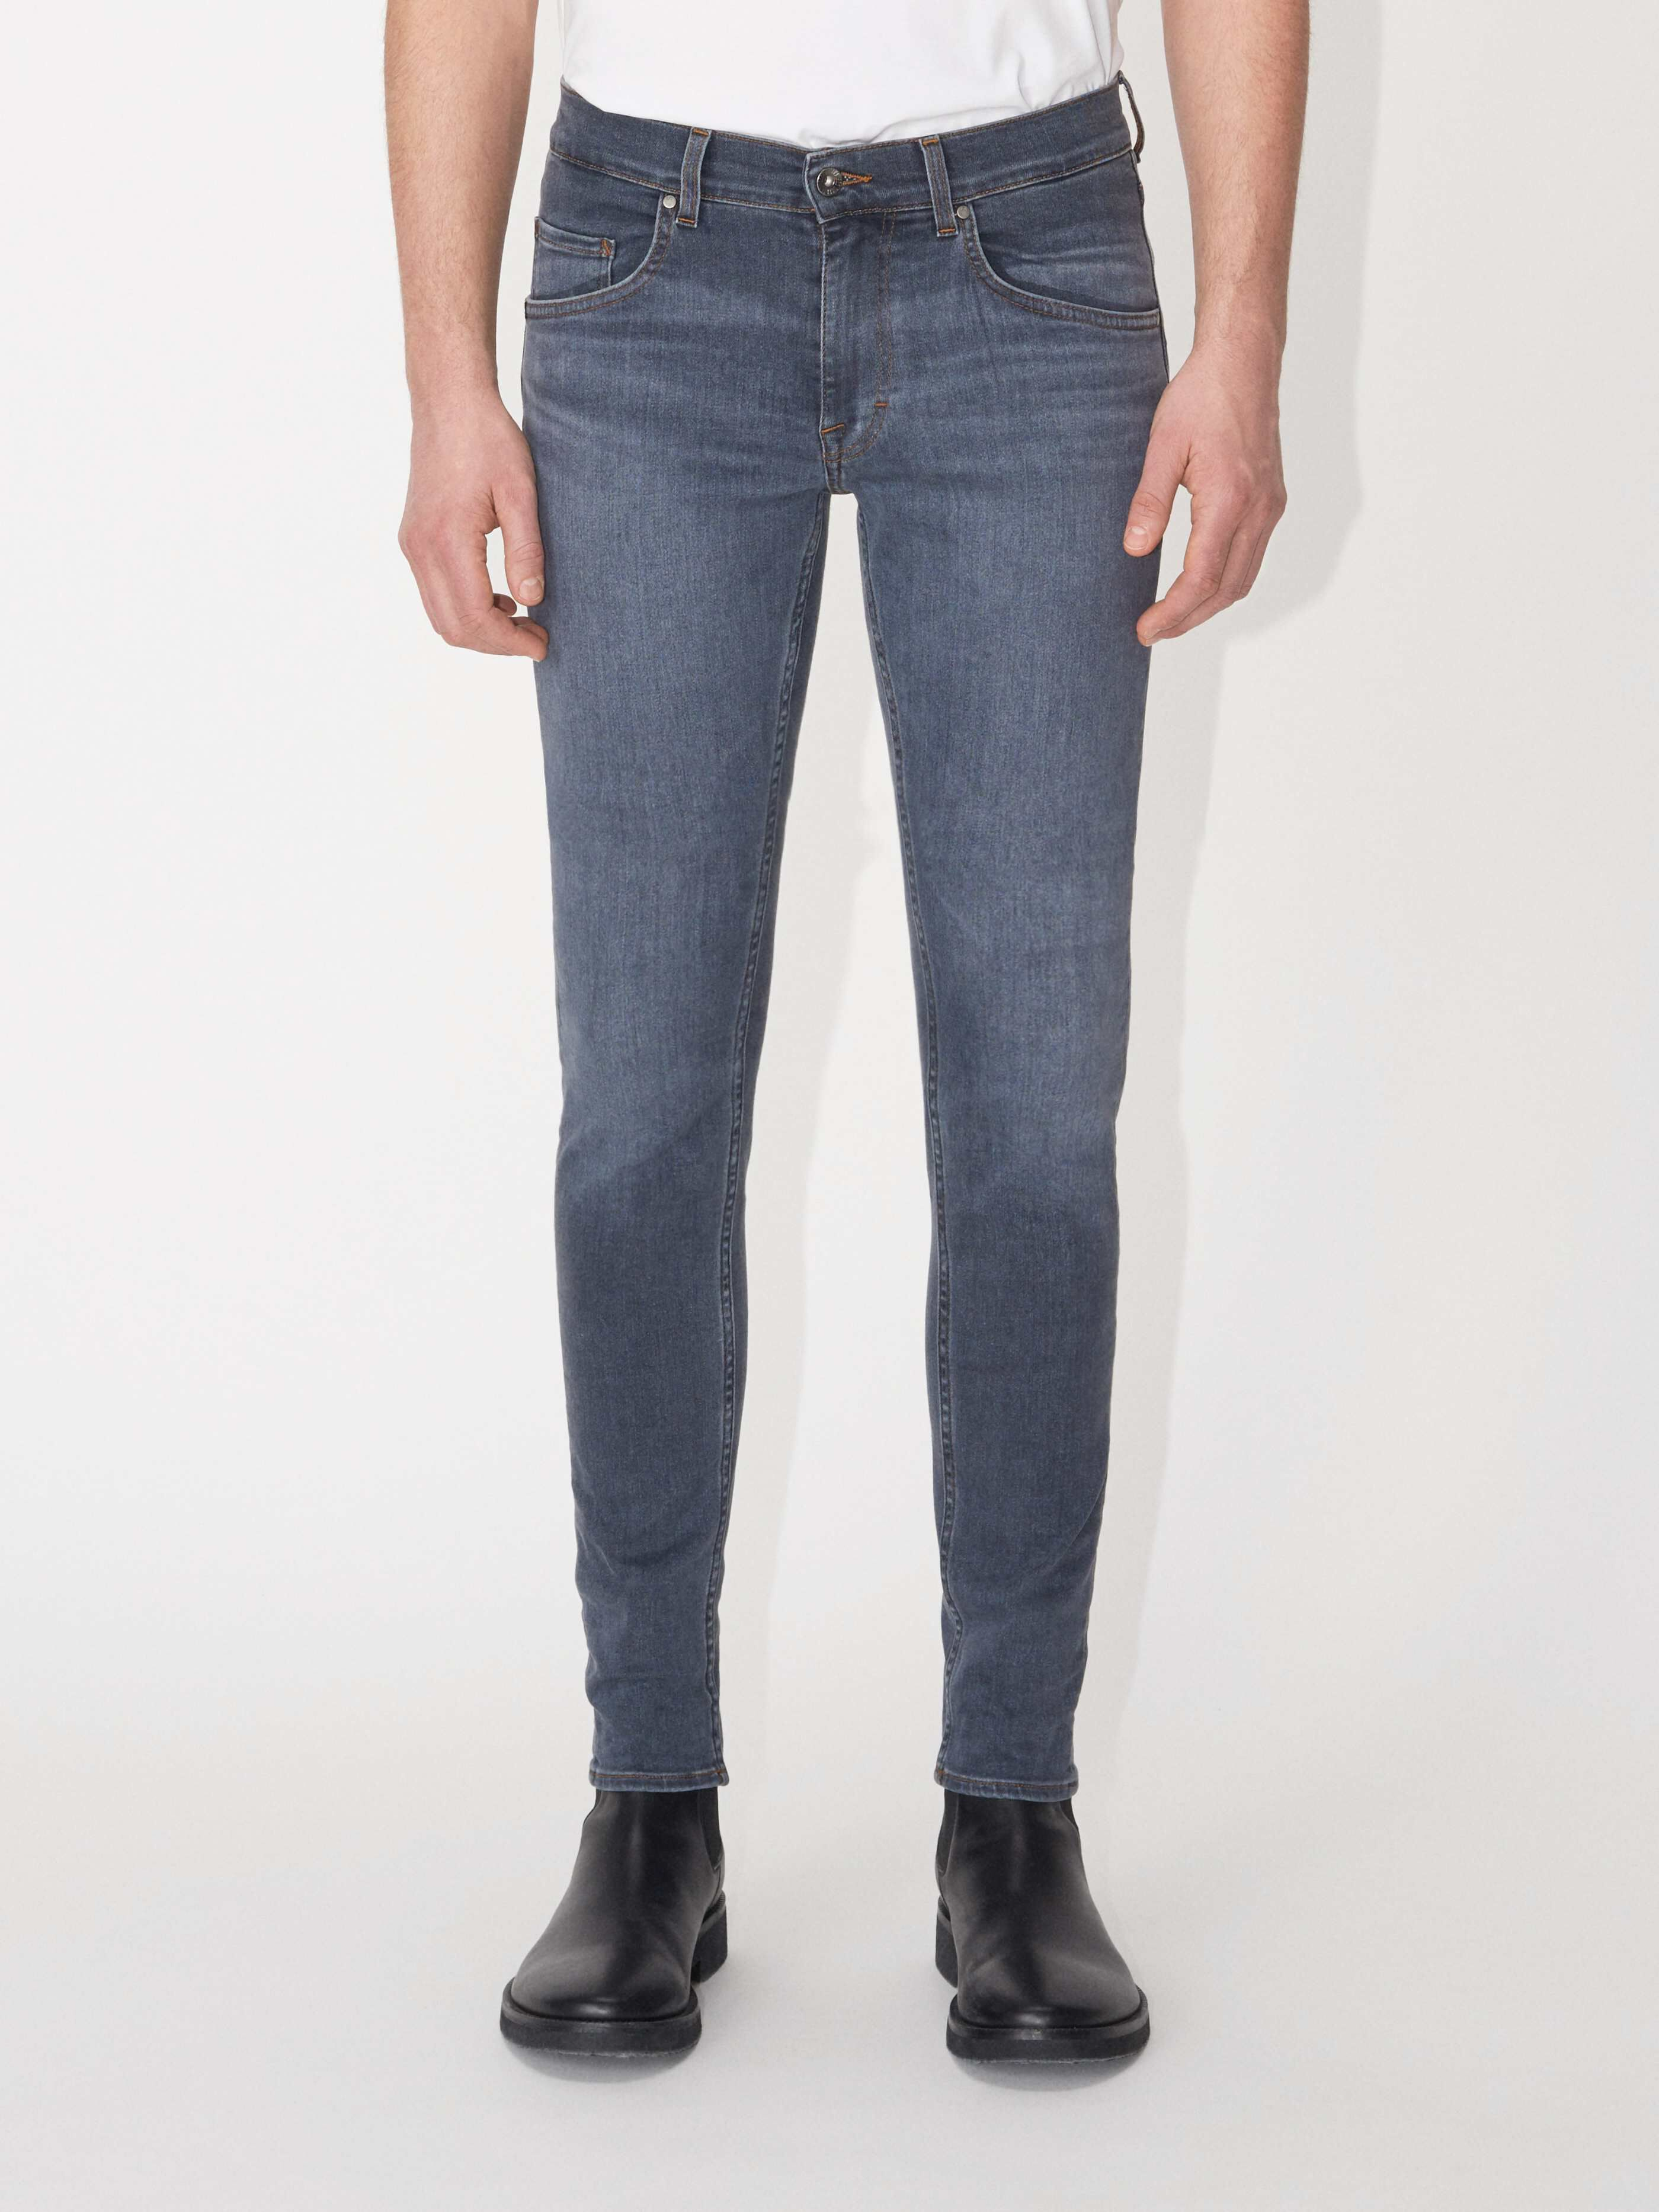 Jeans Find quality designer jeans at discounted prices